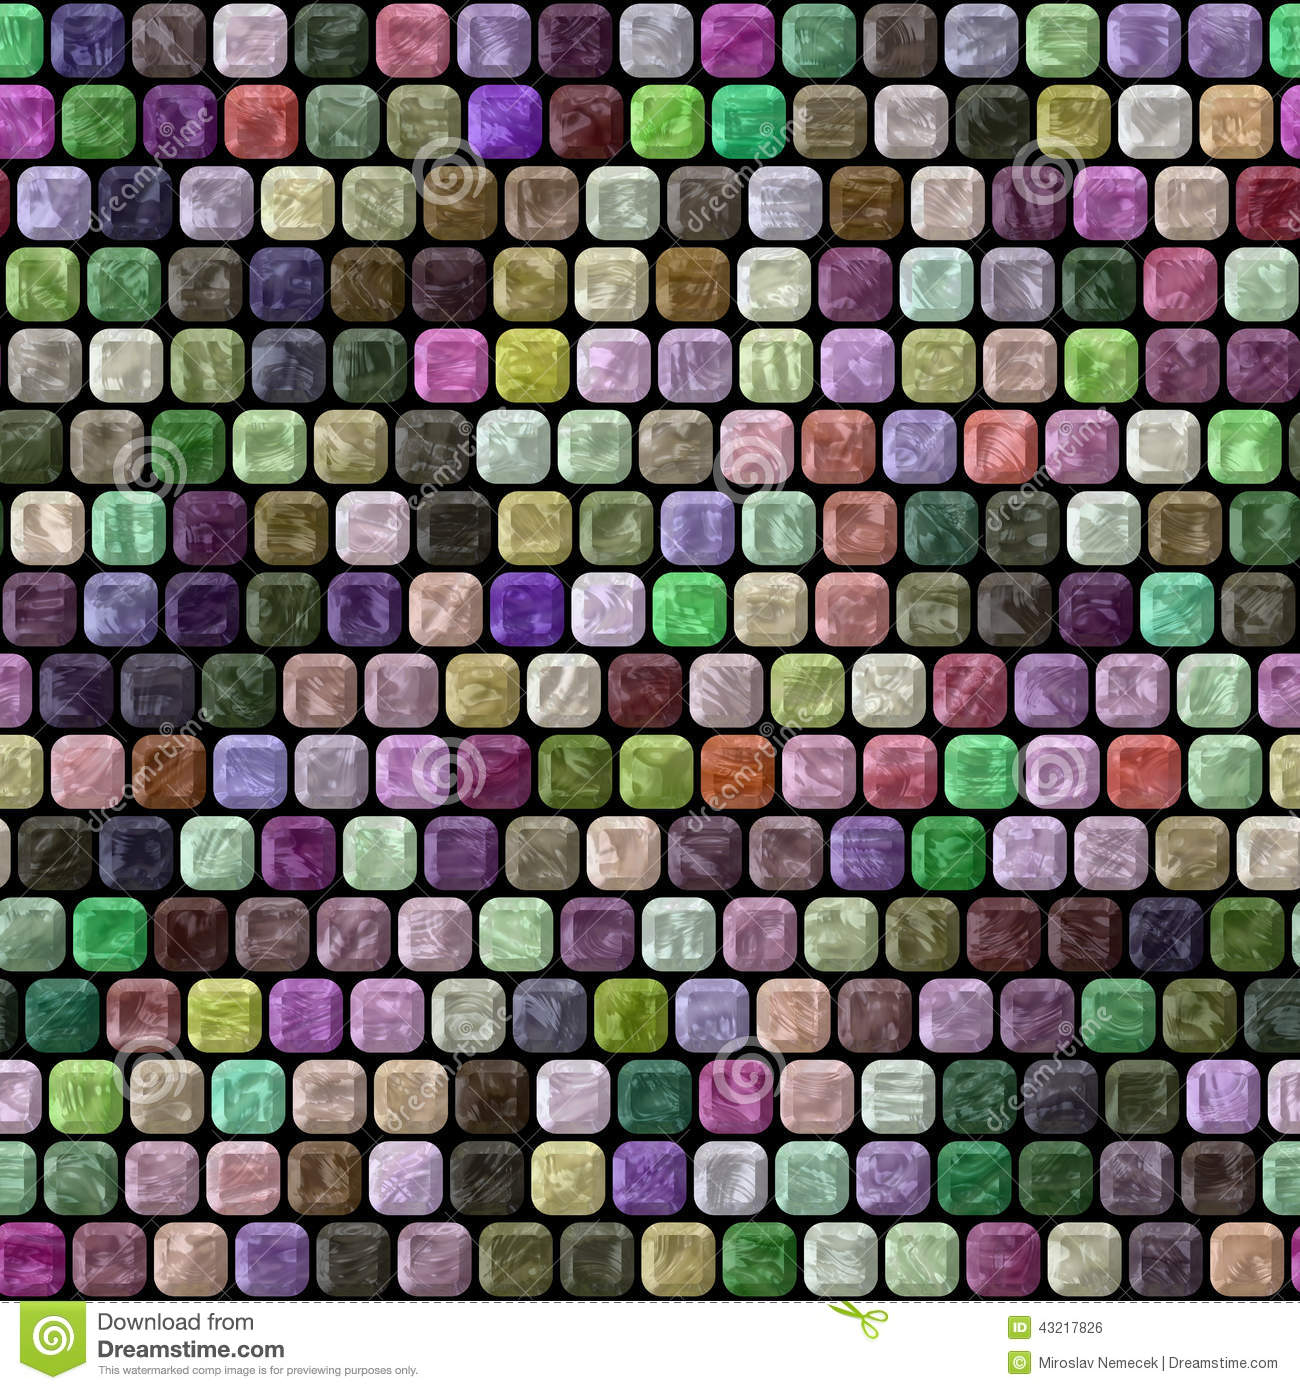 generated seamless tile background - photo #44